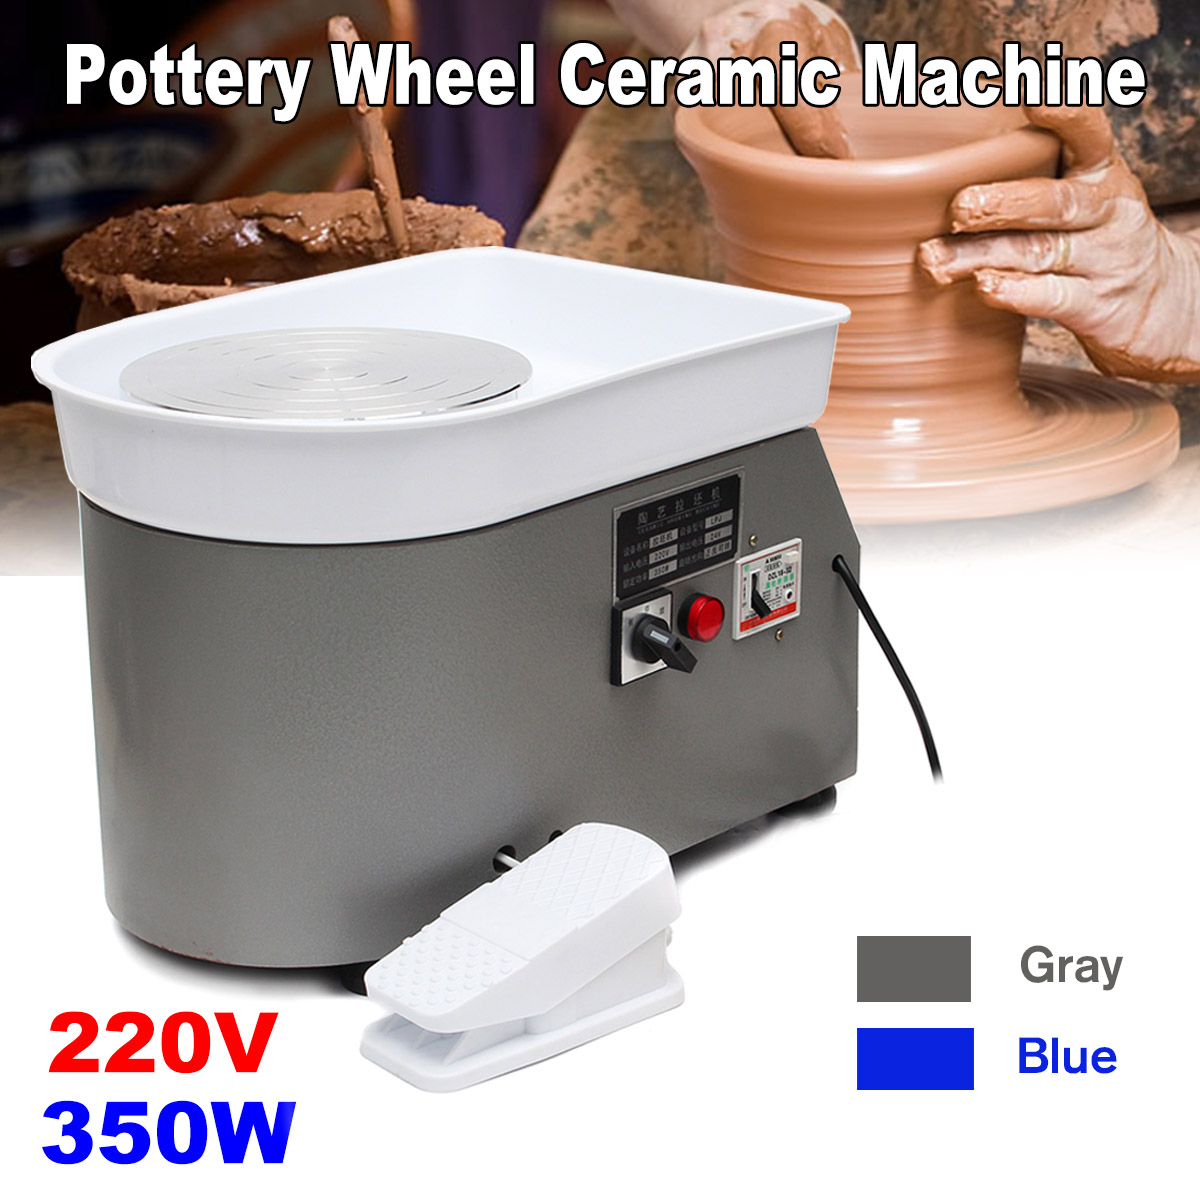 Pottery Forming Machine 220V 350W Electric Pottery Wheel DIY Clay Tool with Tray Flexible Foot Pedal For Ceramic Work CeramicsPottery Forming Machine 220V 350W Electric Pottery Wheel DIY Clay Tool with Tray Flexible Foot Pedal For Ceramic Work Ceramics